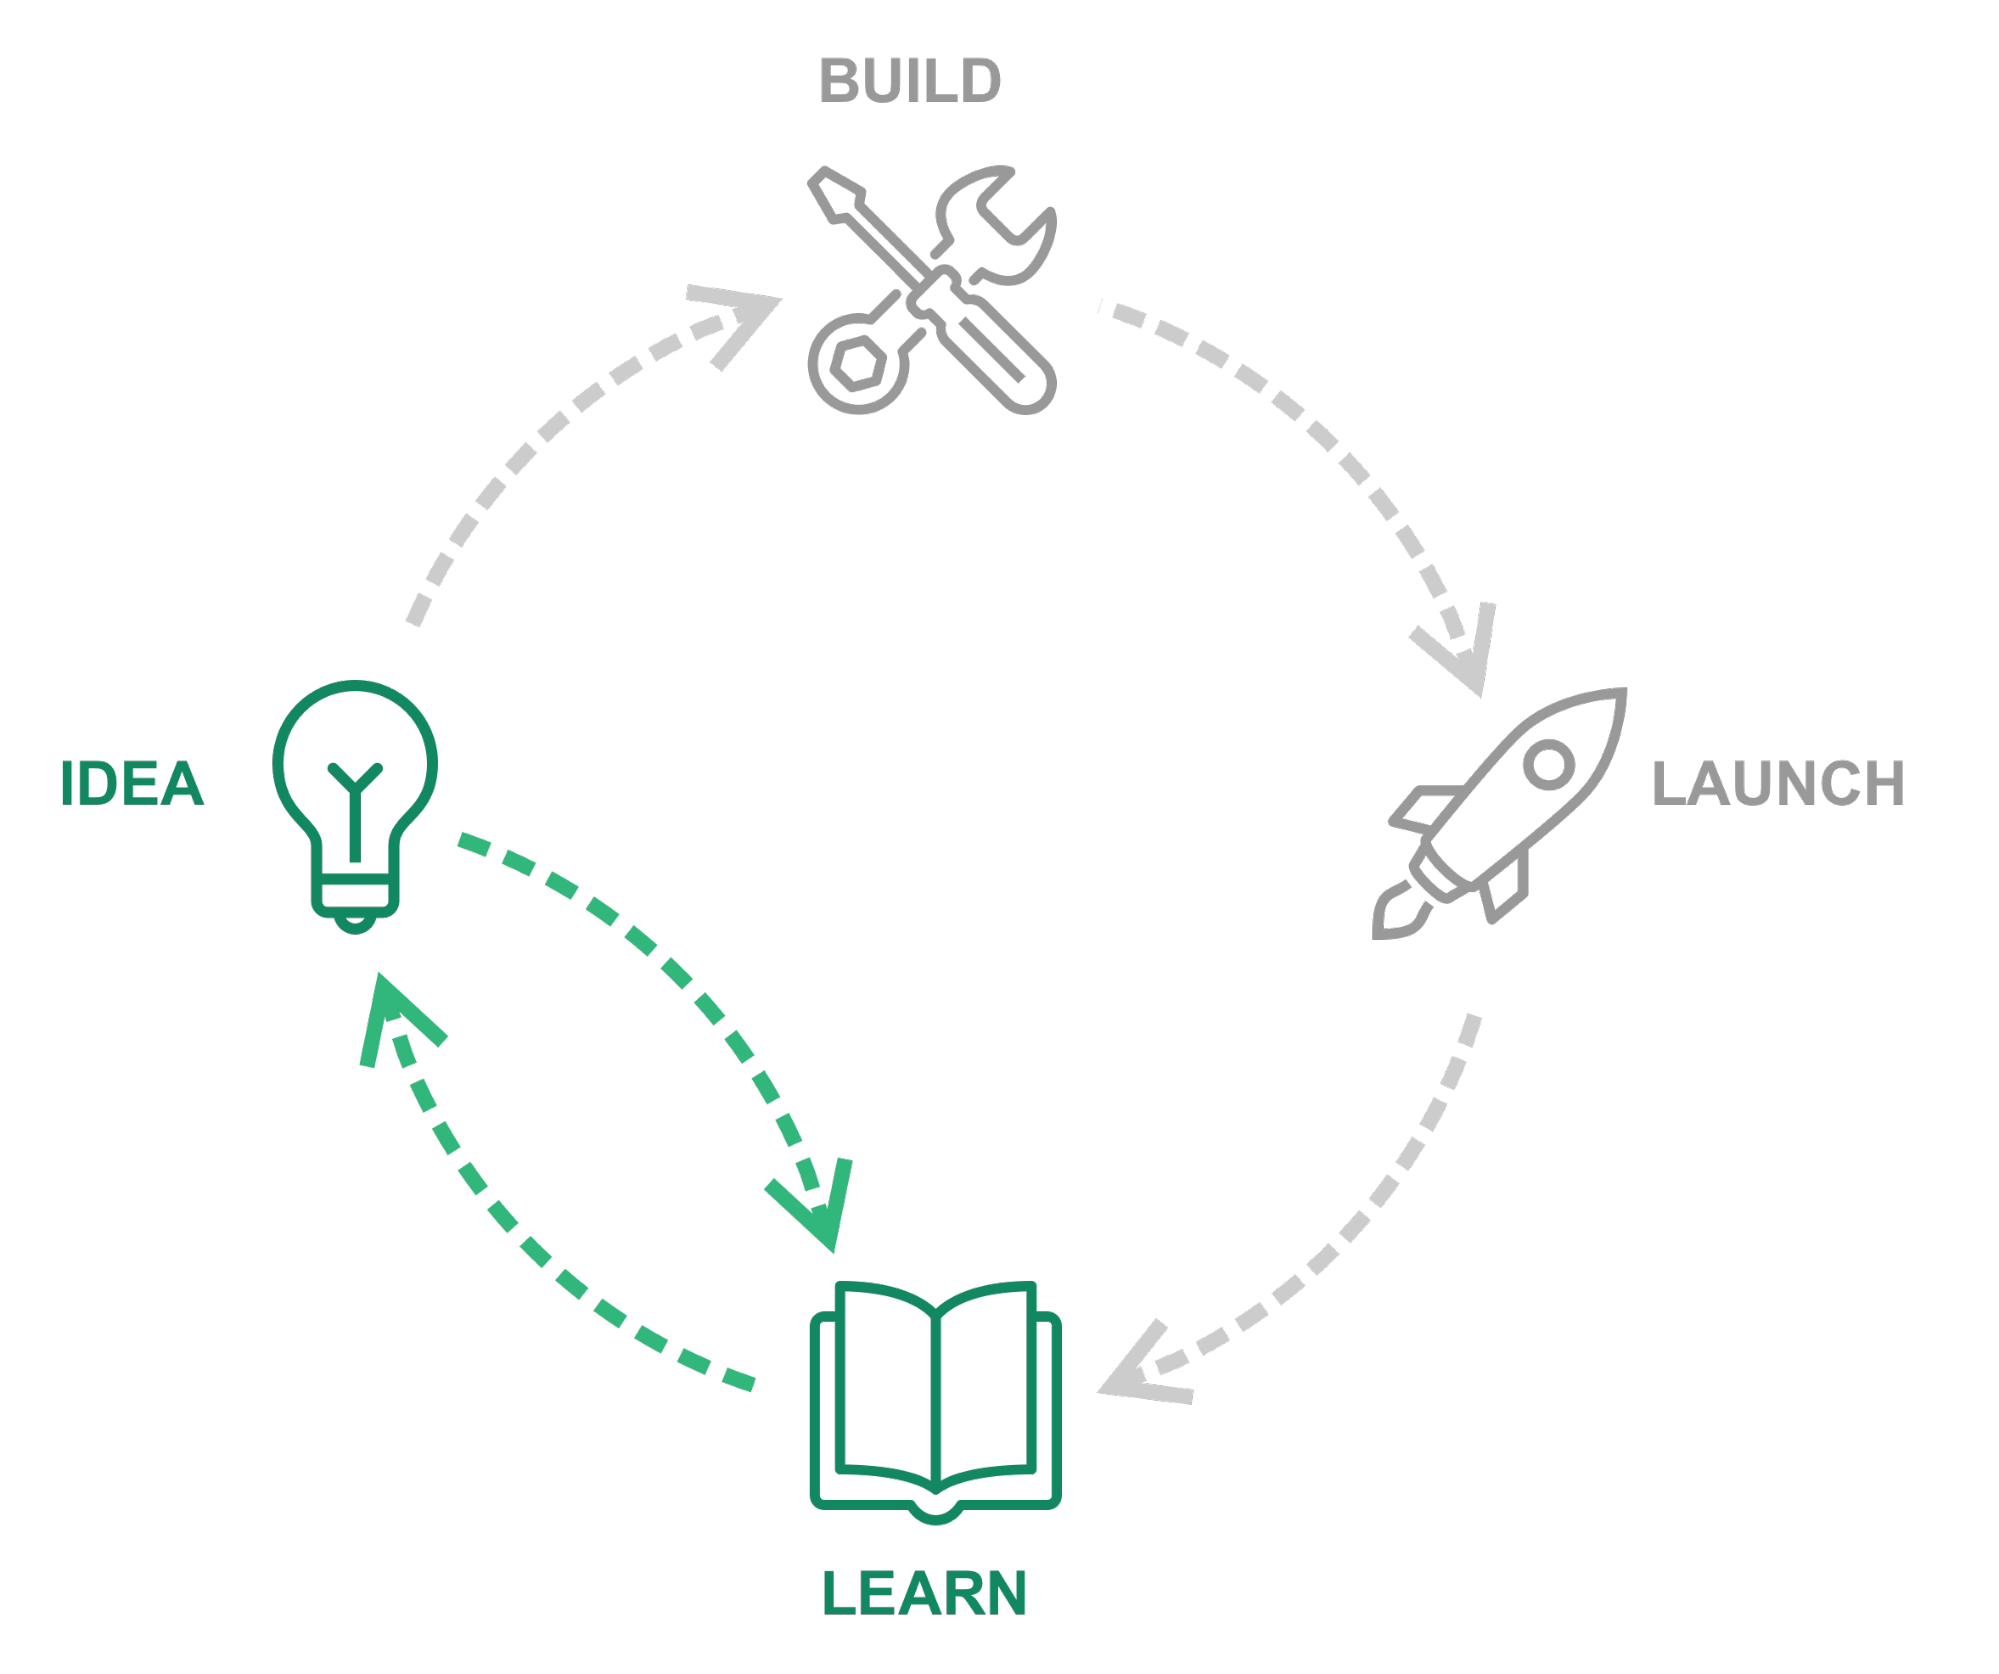 Circular diagram of idea, build, launch, learn with idea and learn highlighted